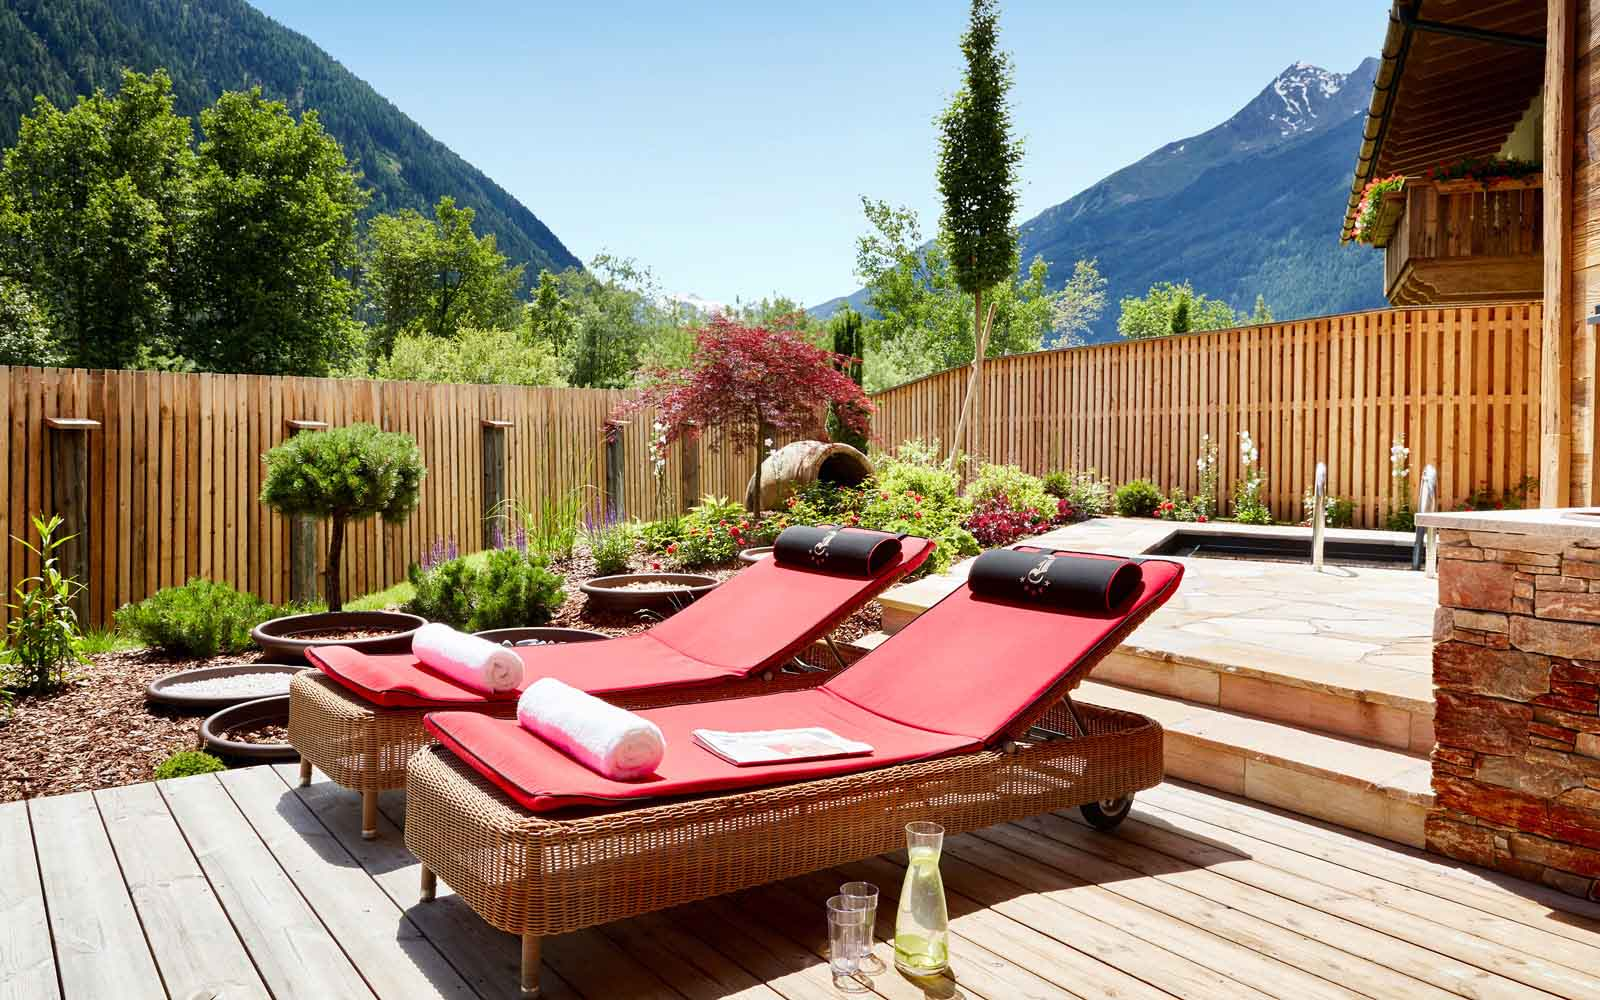 Time for two SPA Hotel Jagdhof Neustift Tyrol Austria